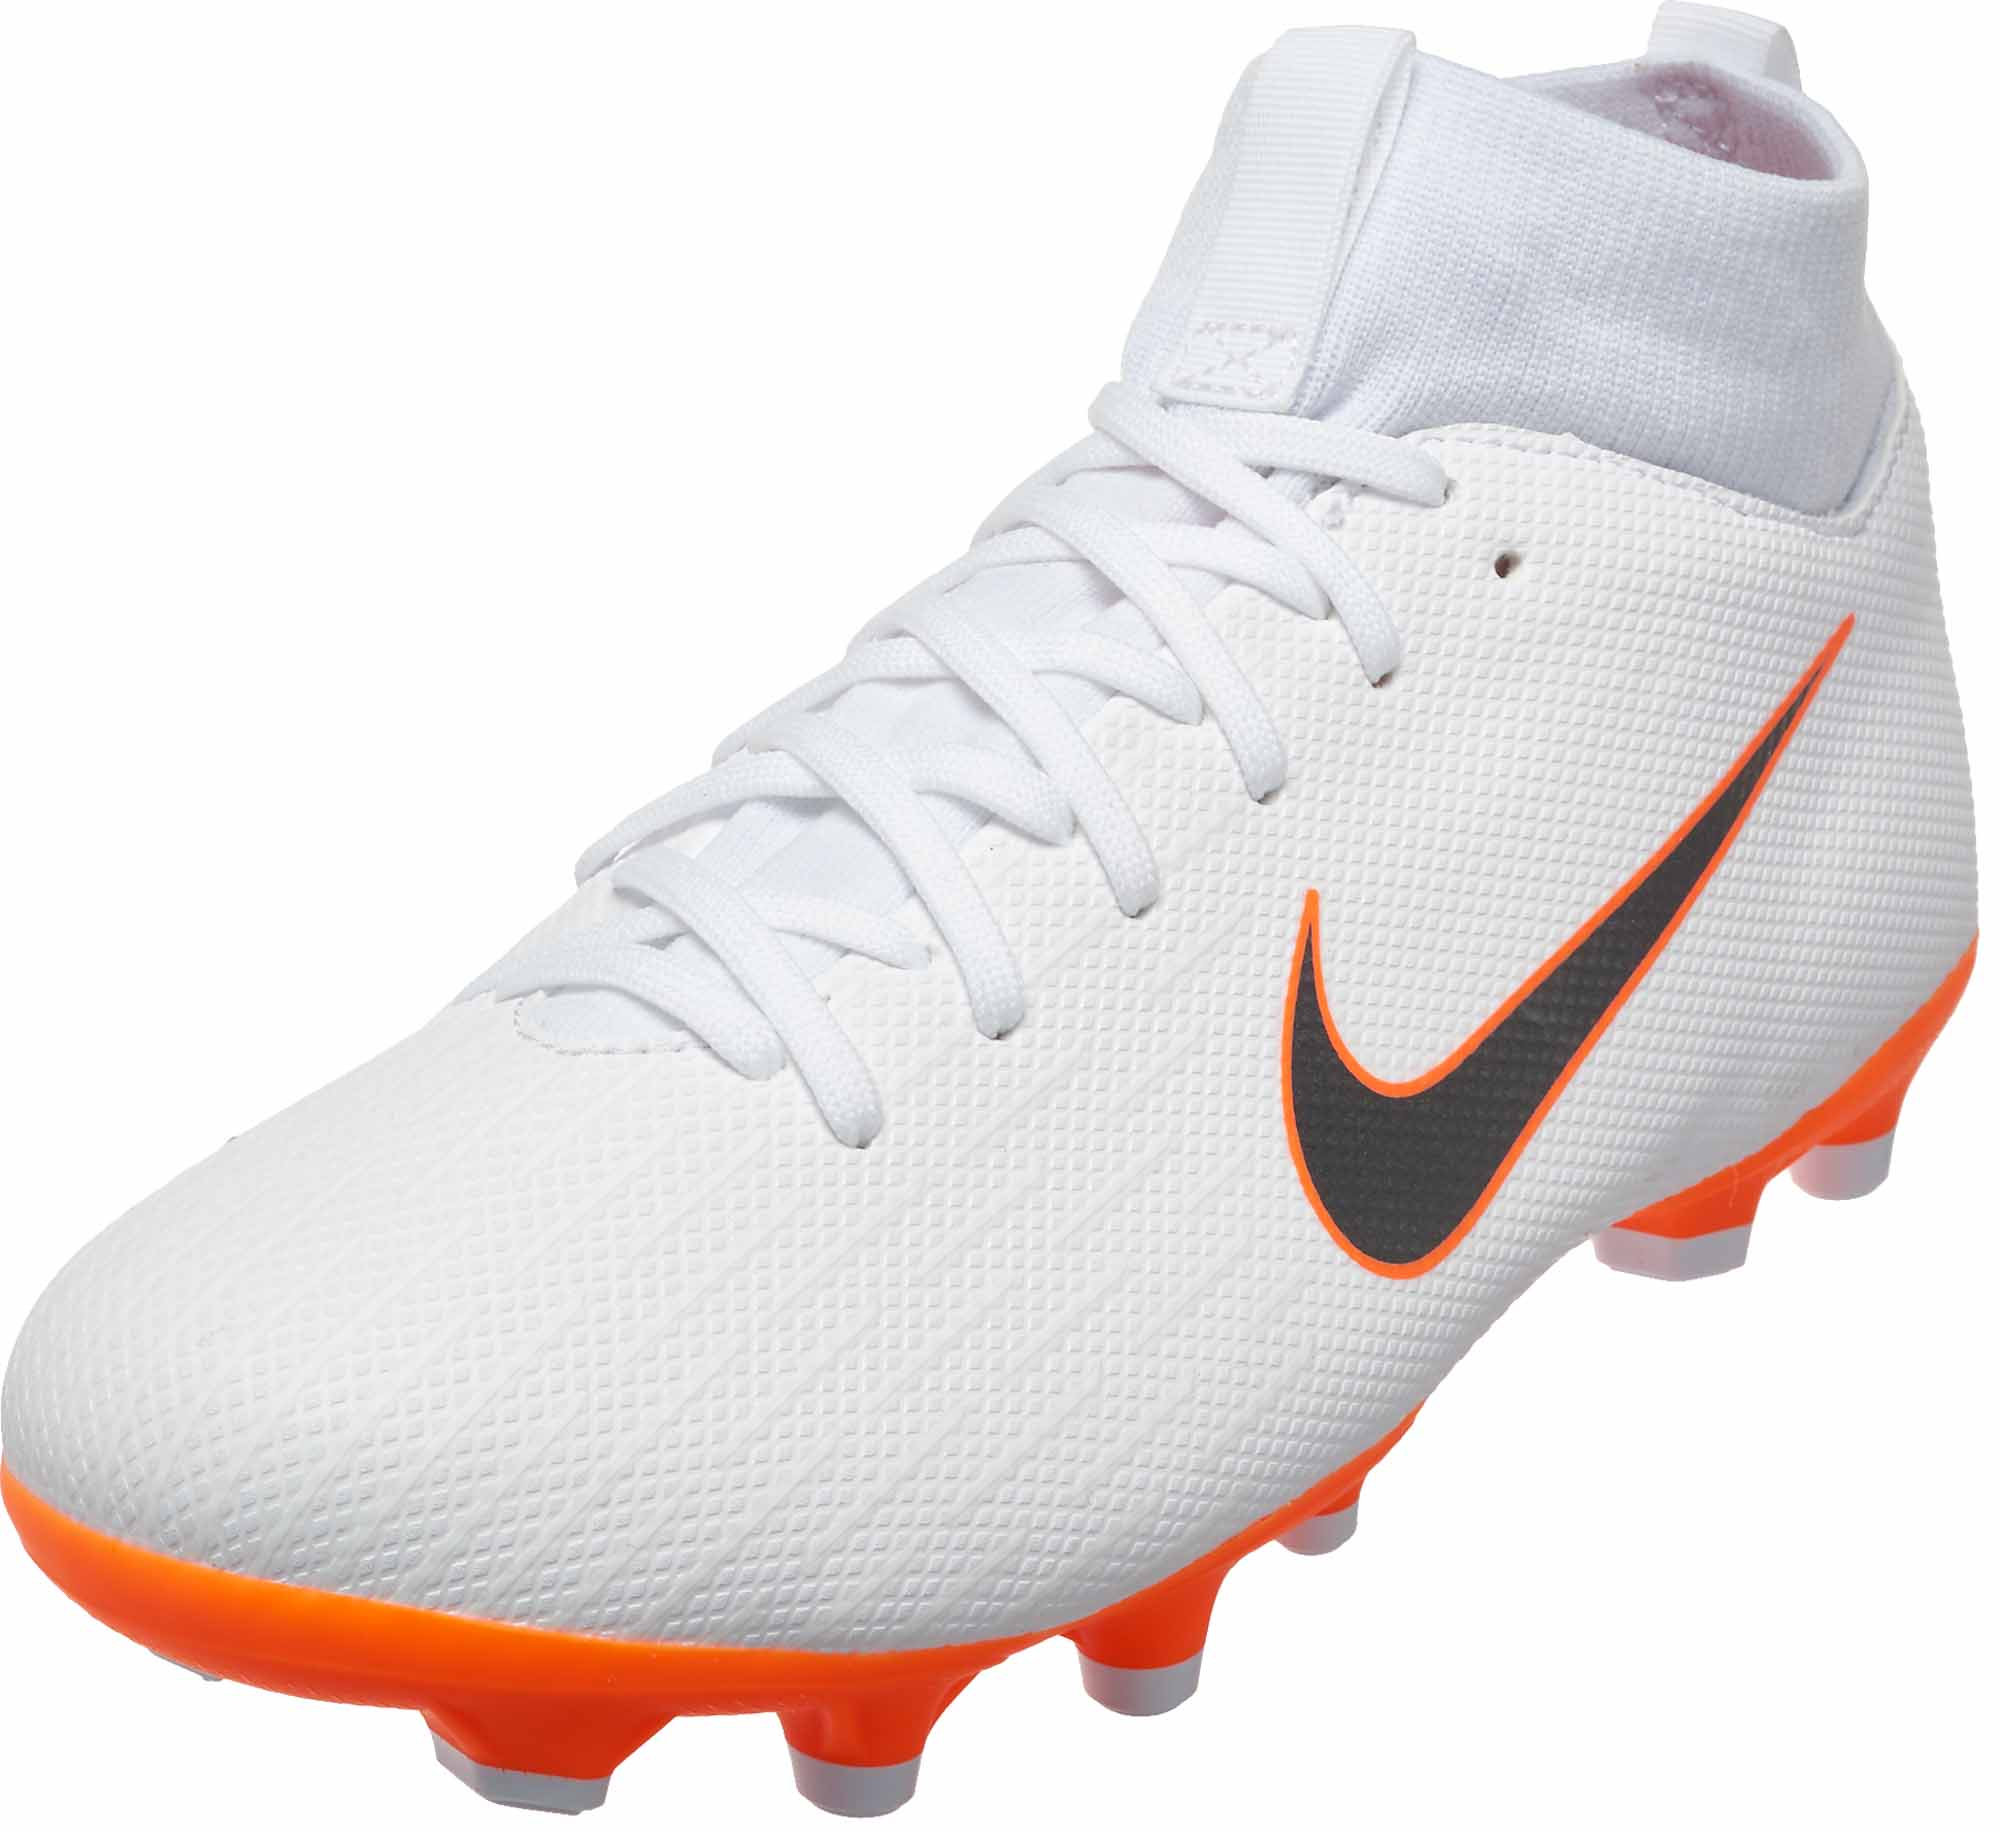 cf56b077d761 Nike Mercurial Superfly 6 Academy MG – Youth – White Metallic Cool  Grey Total